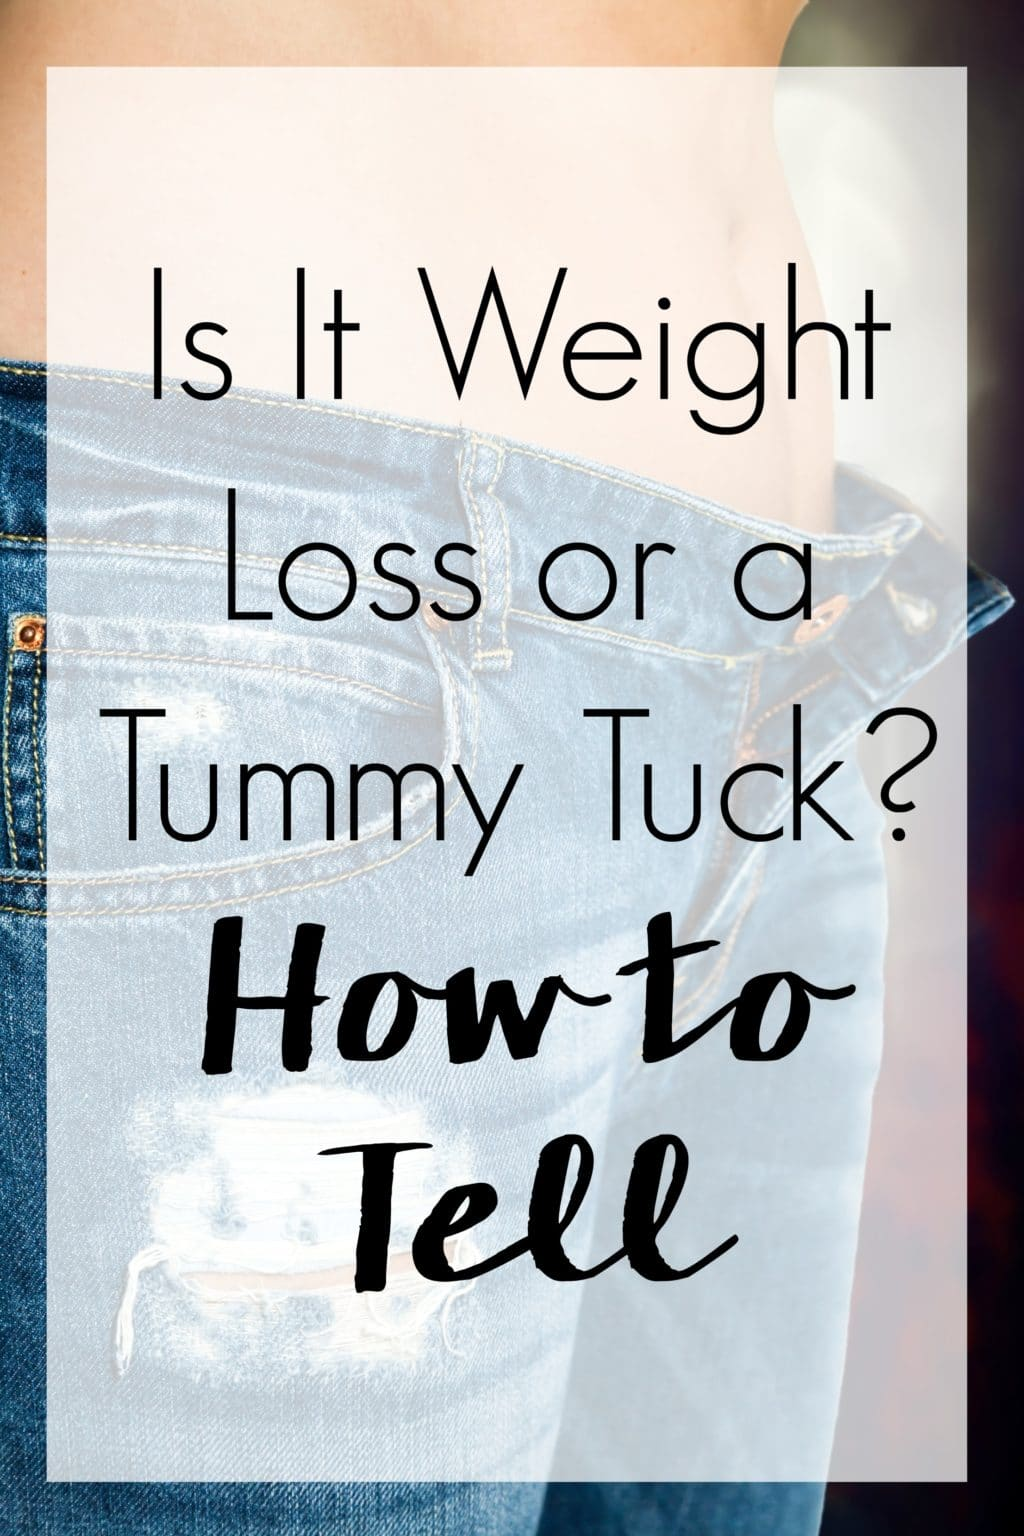 Pins can be deceiving. Is it weight loss or tummy tuck surgery you're seeing in those before and after photos? Here's a simple guide so you can tell.